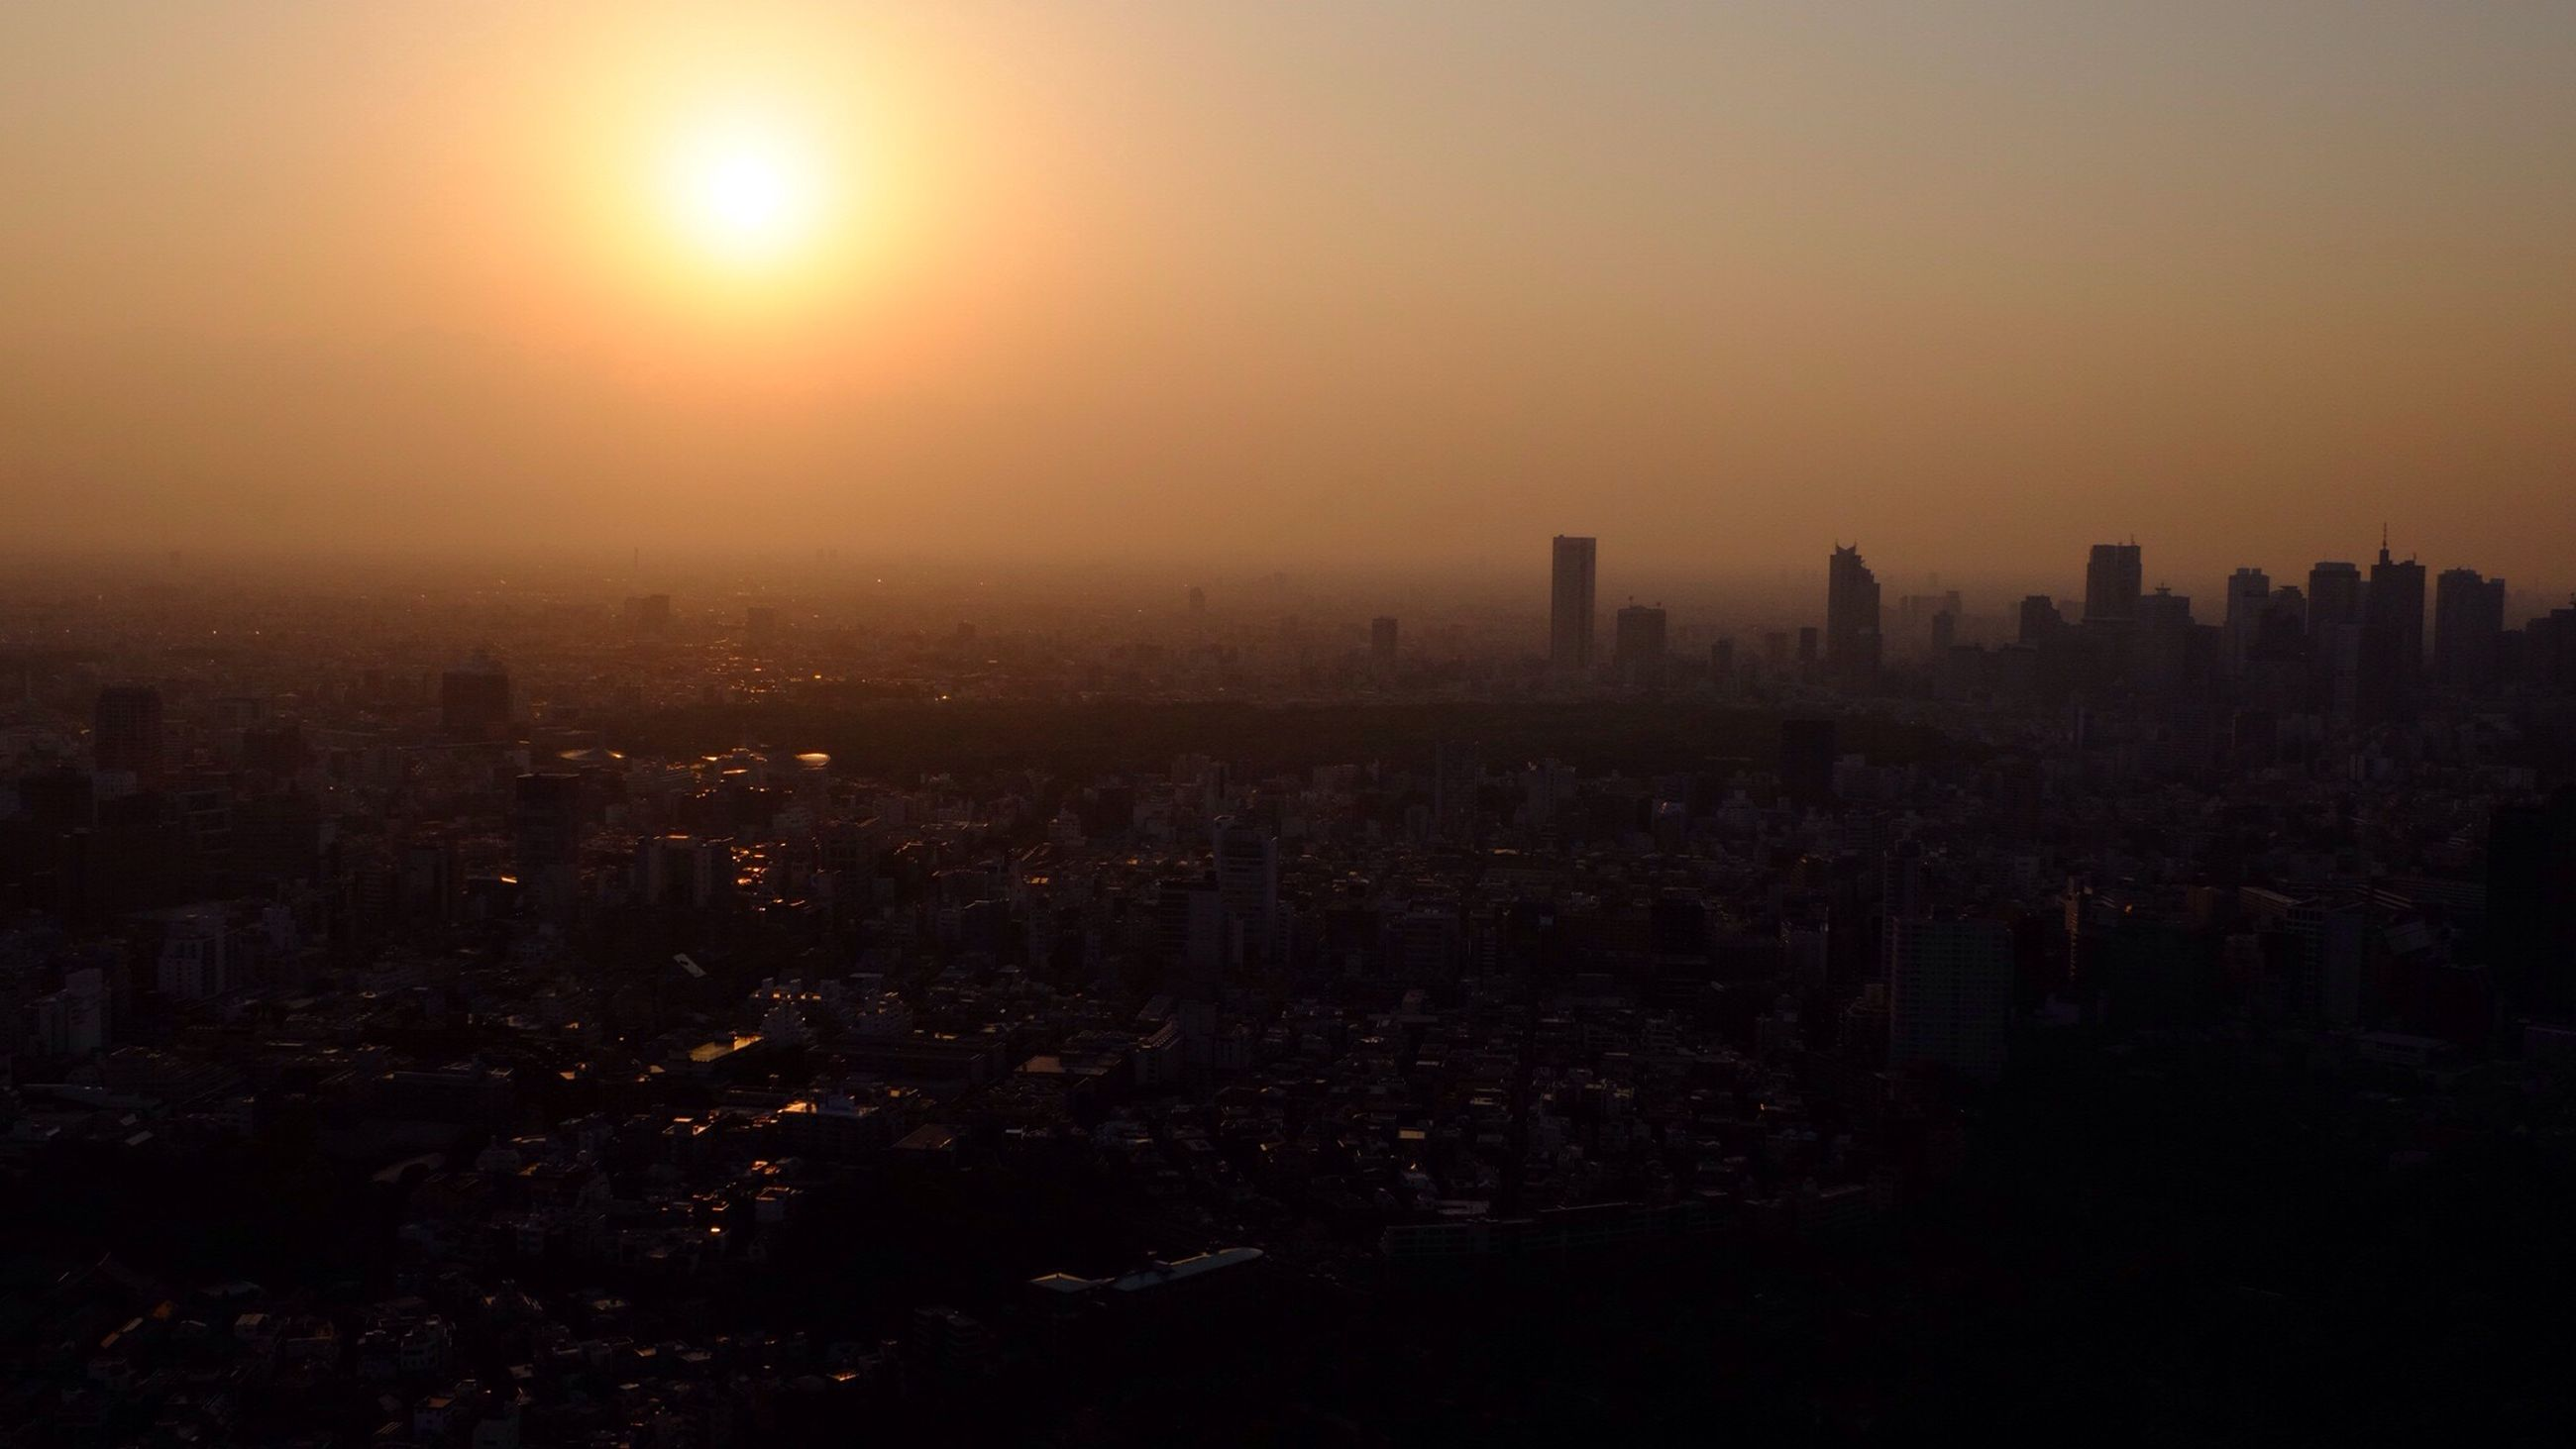 cityscape, sunset, city, building exterior, architecture, built structure, crowded, skyscraper, sun, orange color, high angle view, sky, residential district, clear sky, residential building, tower, urban skyline, city life, tall - high, sunlight